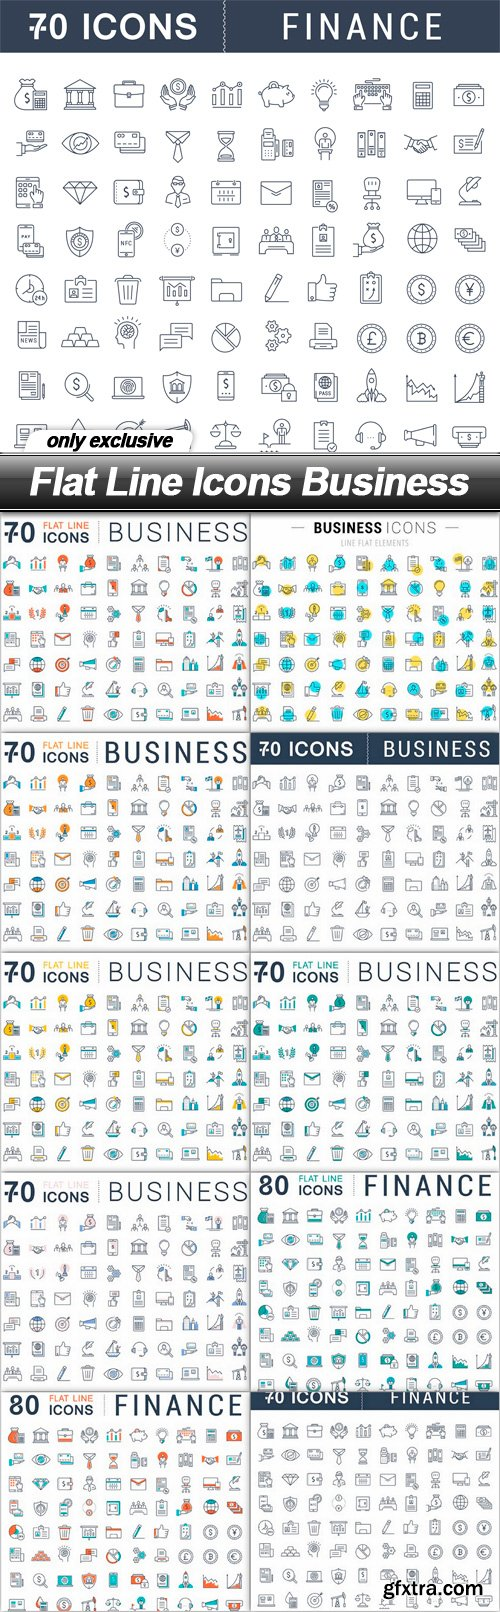 Flat Line Icons Business - 10 EPS